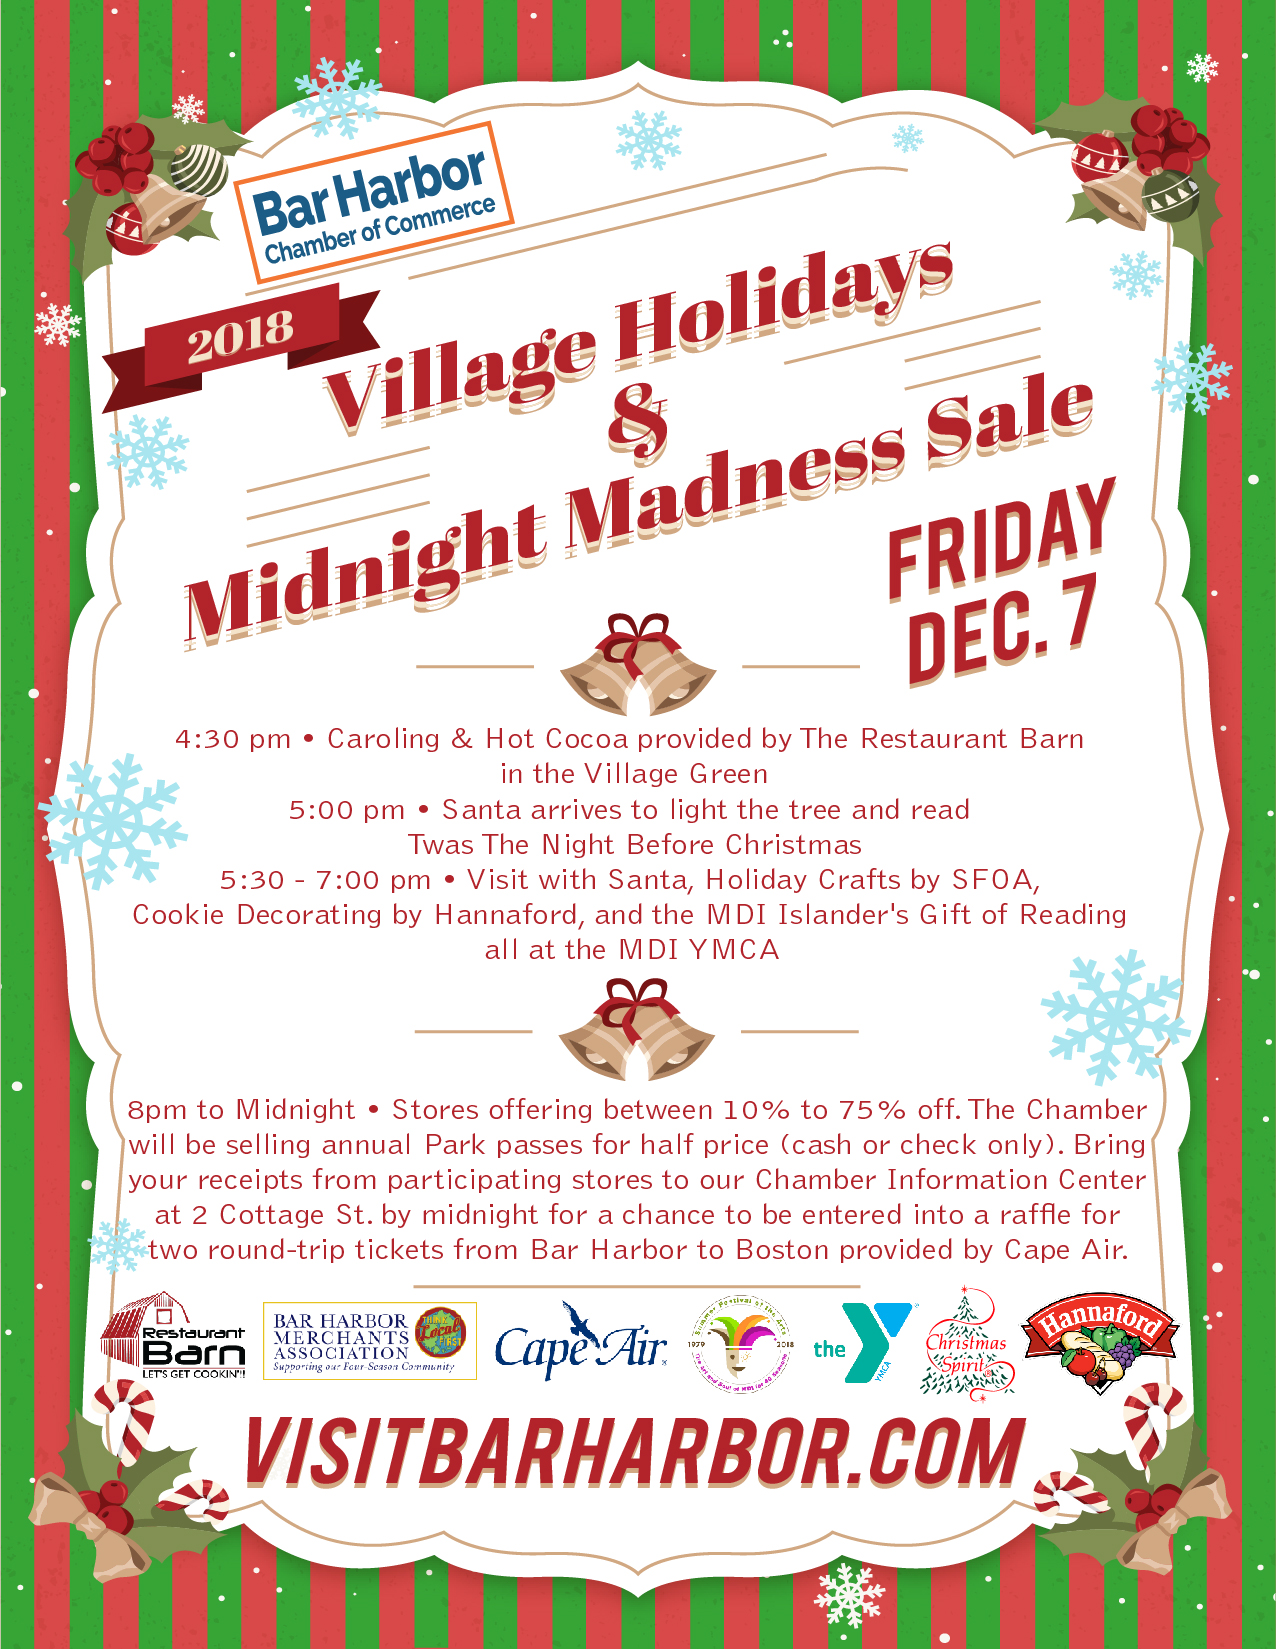 Village Holidays and Midnight Madness Sale